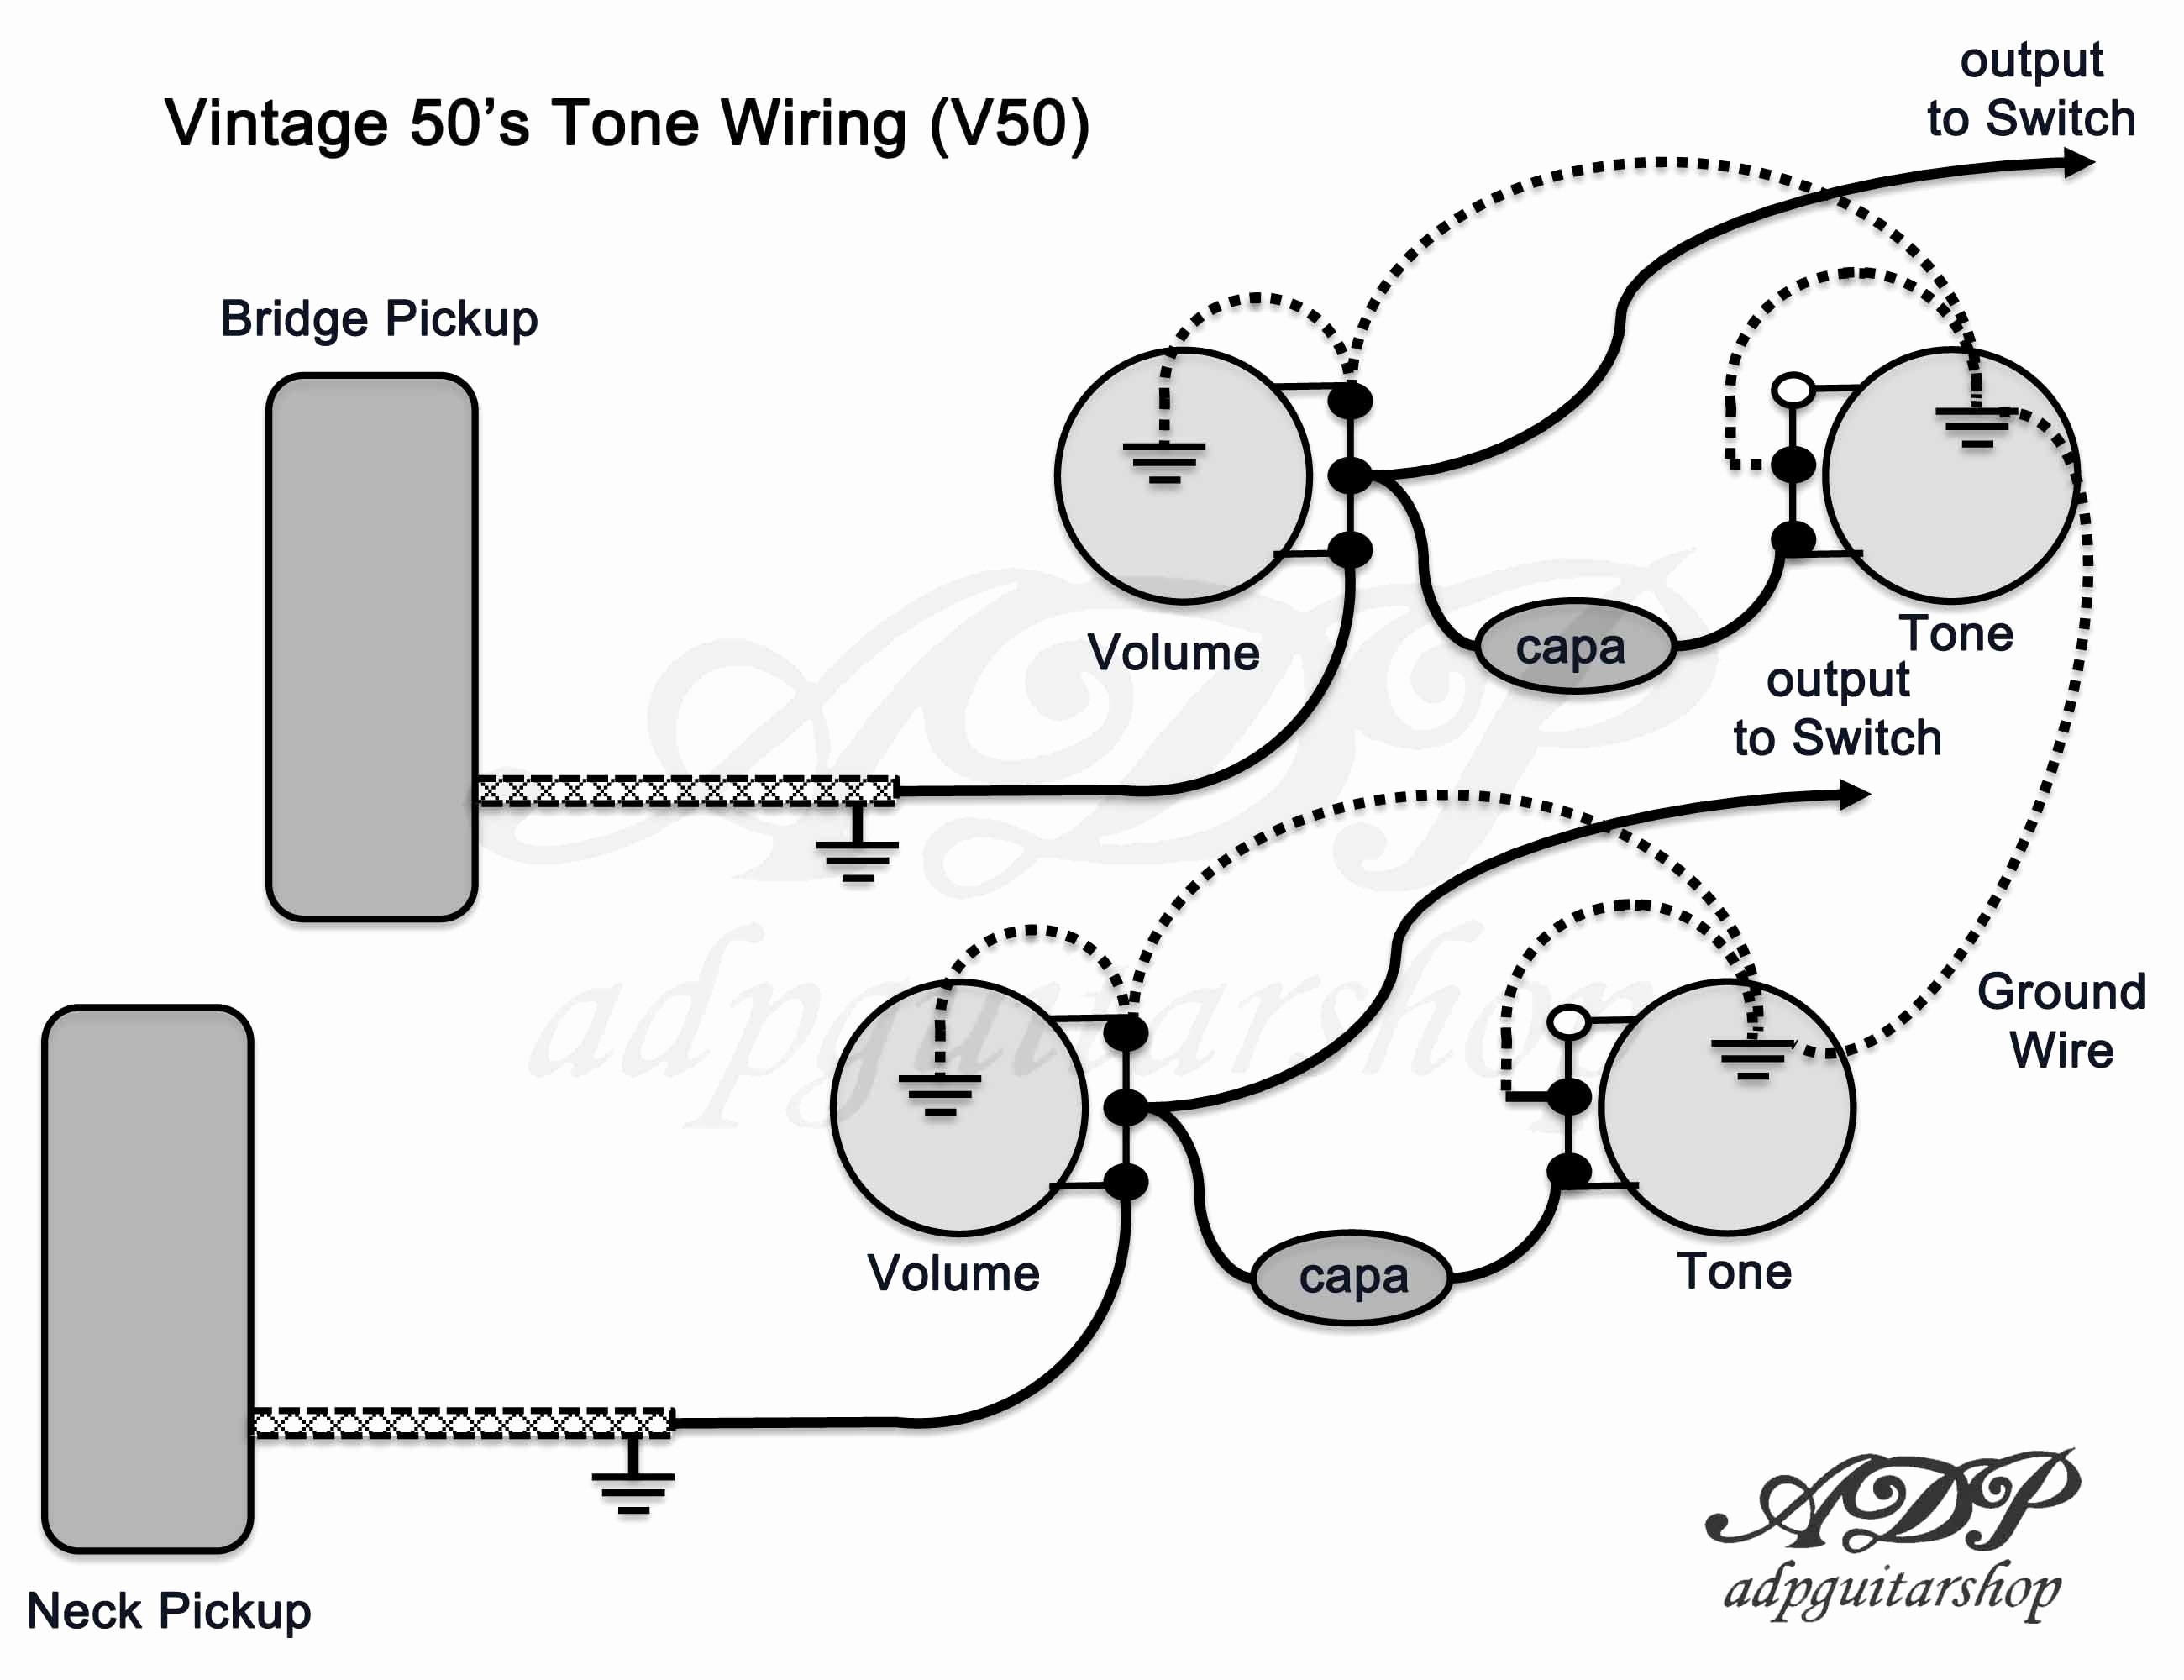 Les Paul 50s Wiring Diagram Guitar Wiring Diagram No Pots Fresh Wiring Diagram Les Paul 50s Of Les Paul 50s Wiring Diagram